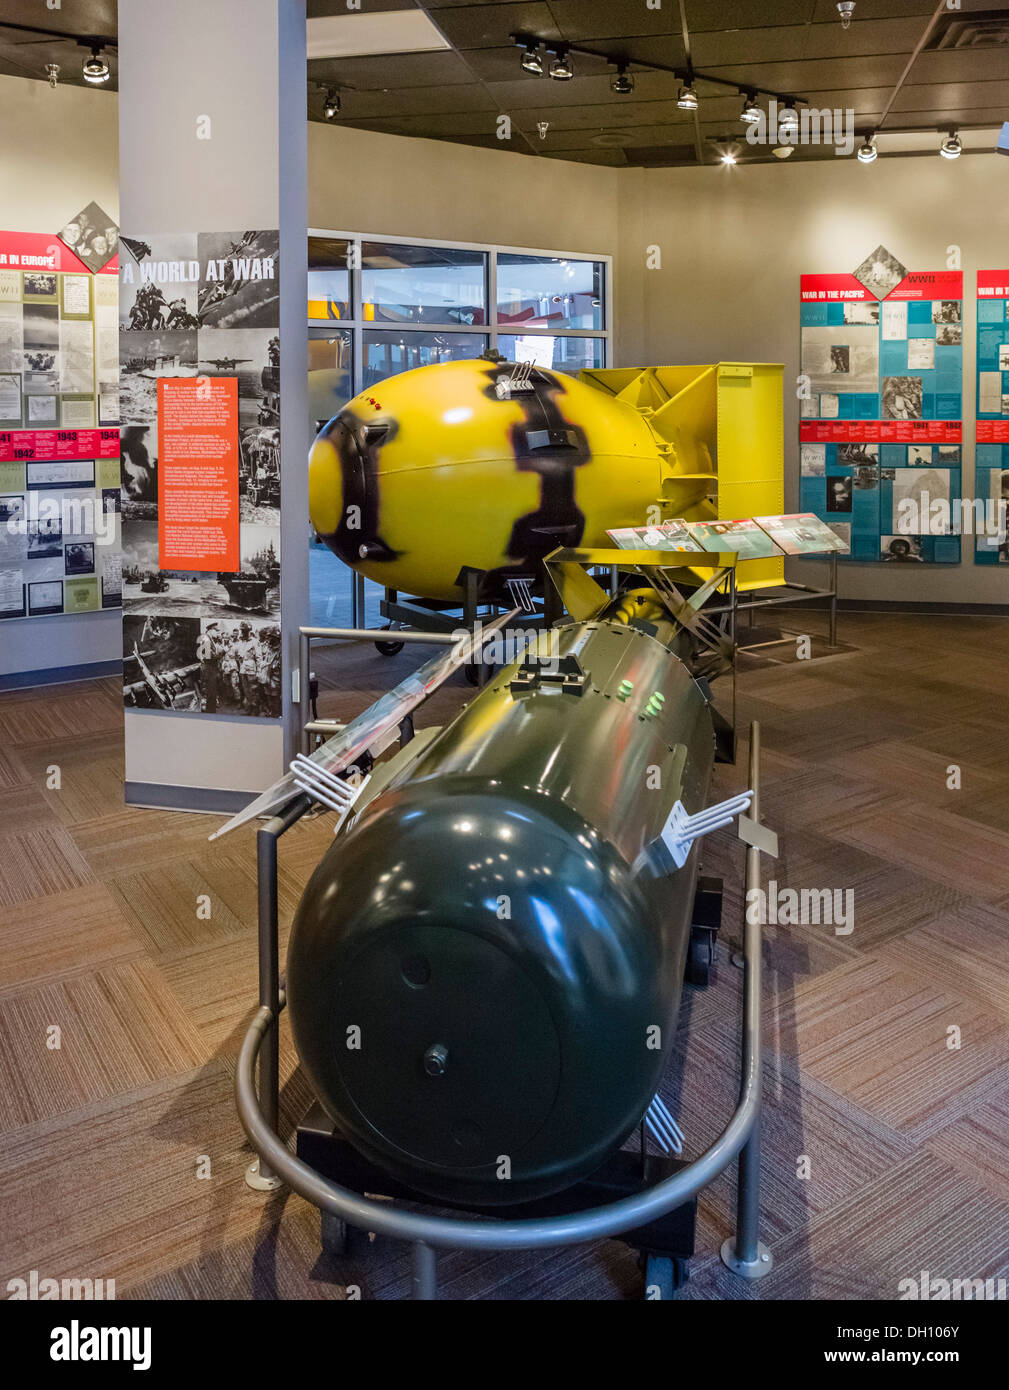 Models of atomic bombs 'Little Boy' and 'Fat Man' dropped on Japan in WWII, Bradbury Science Museum, Los Alamos, New Mexico, USA - Stock Image